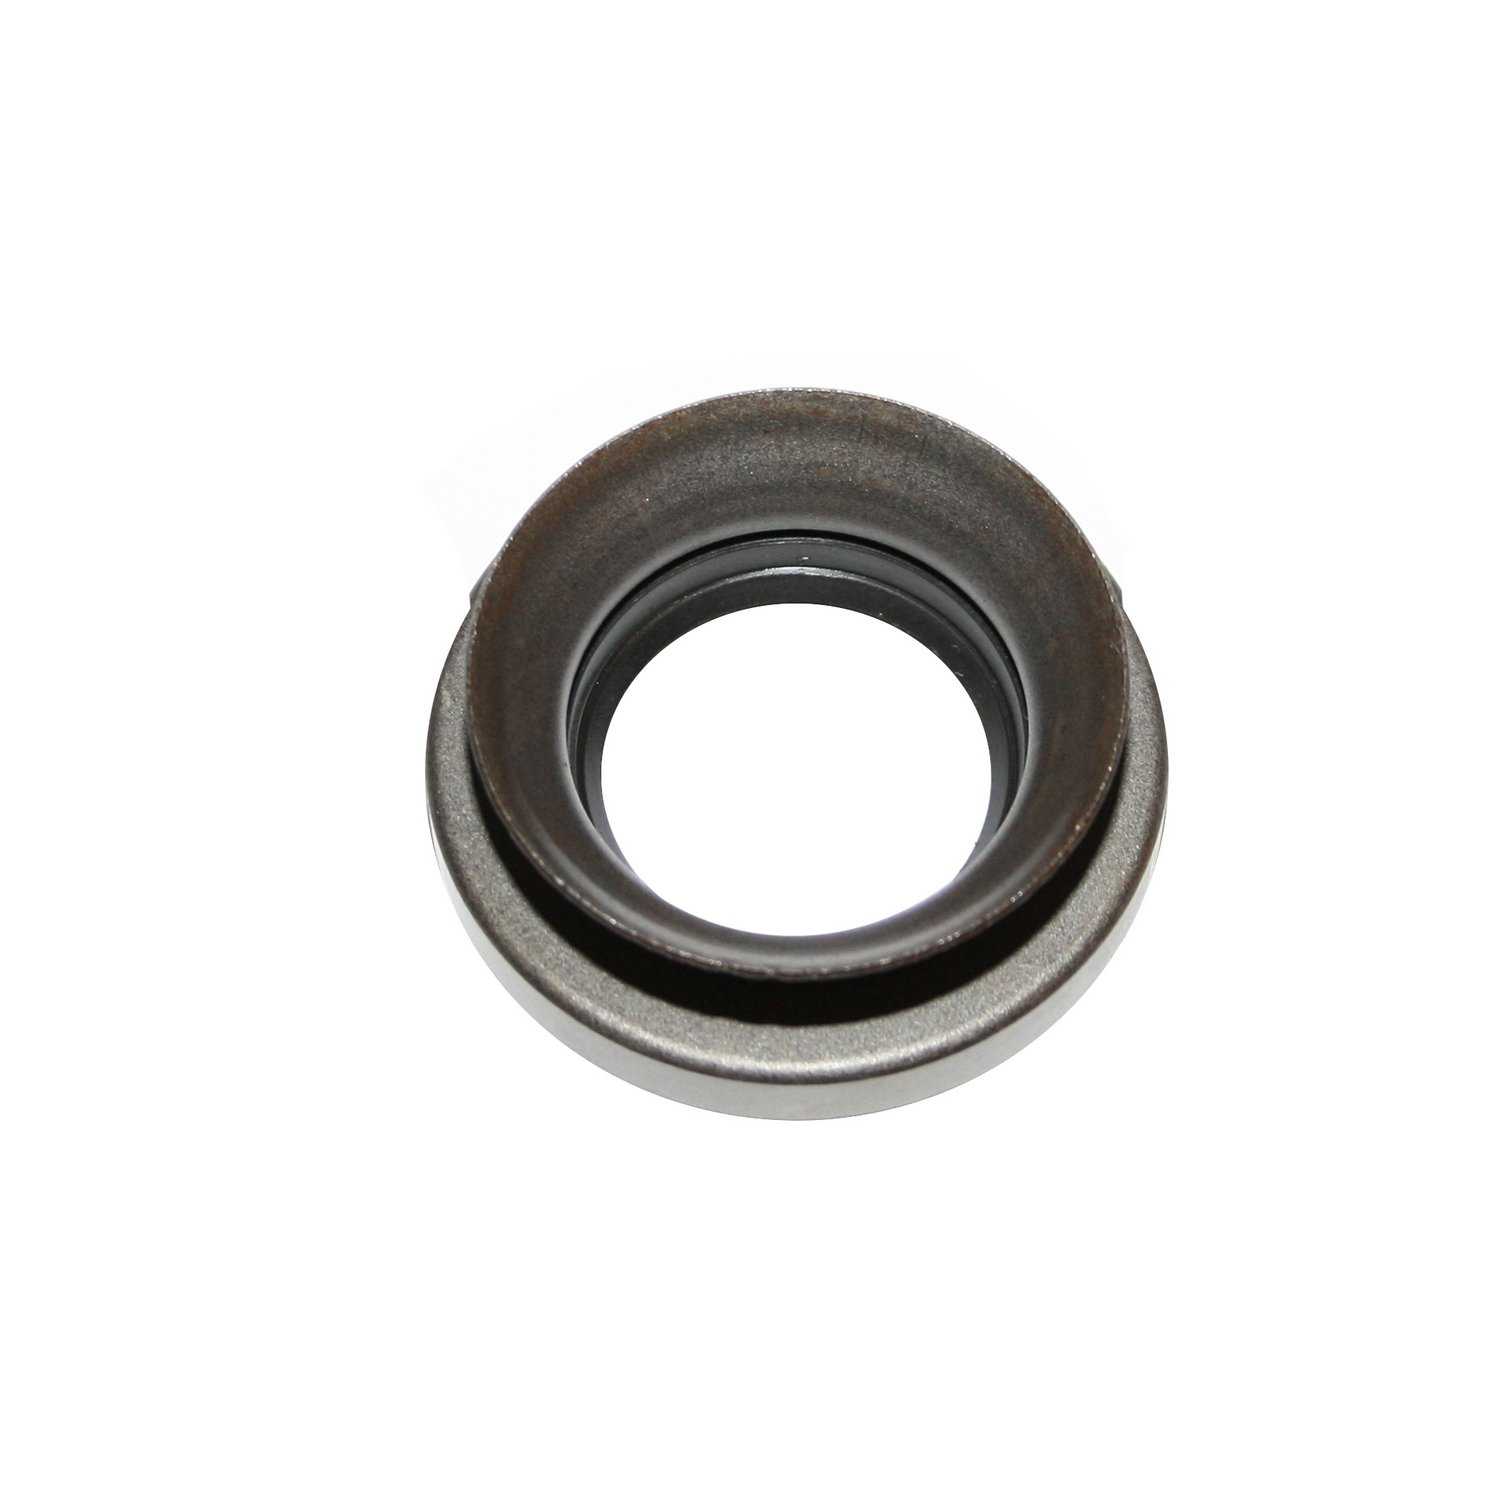 1997-2006 Jeep Wrangler Direct OE Inner Axle Oil Seal, LH/RH, 72-06 Jeep Models